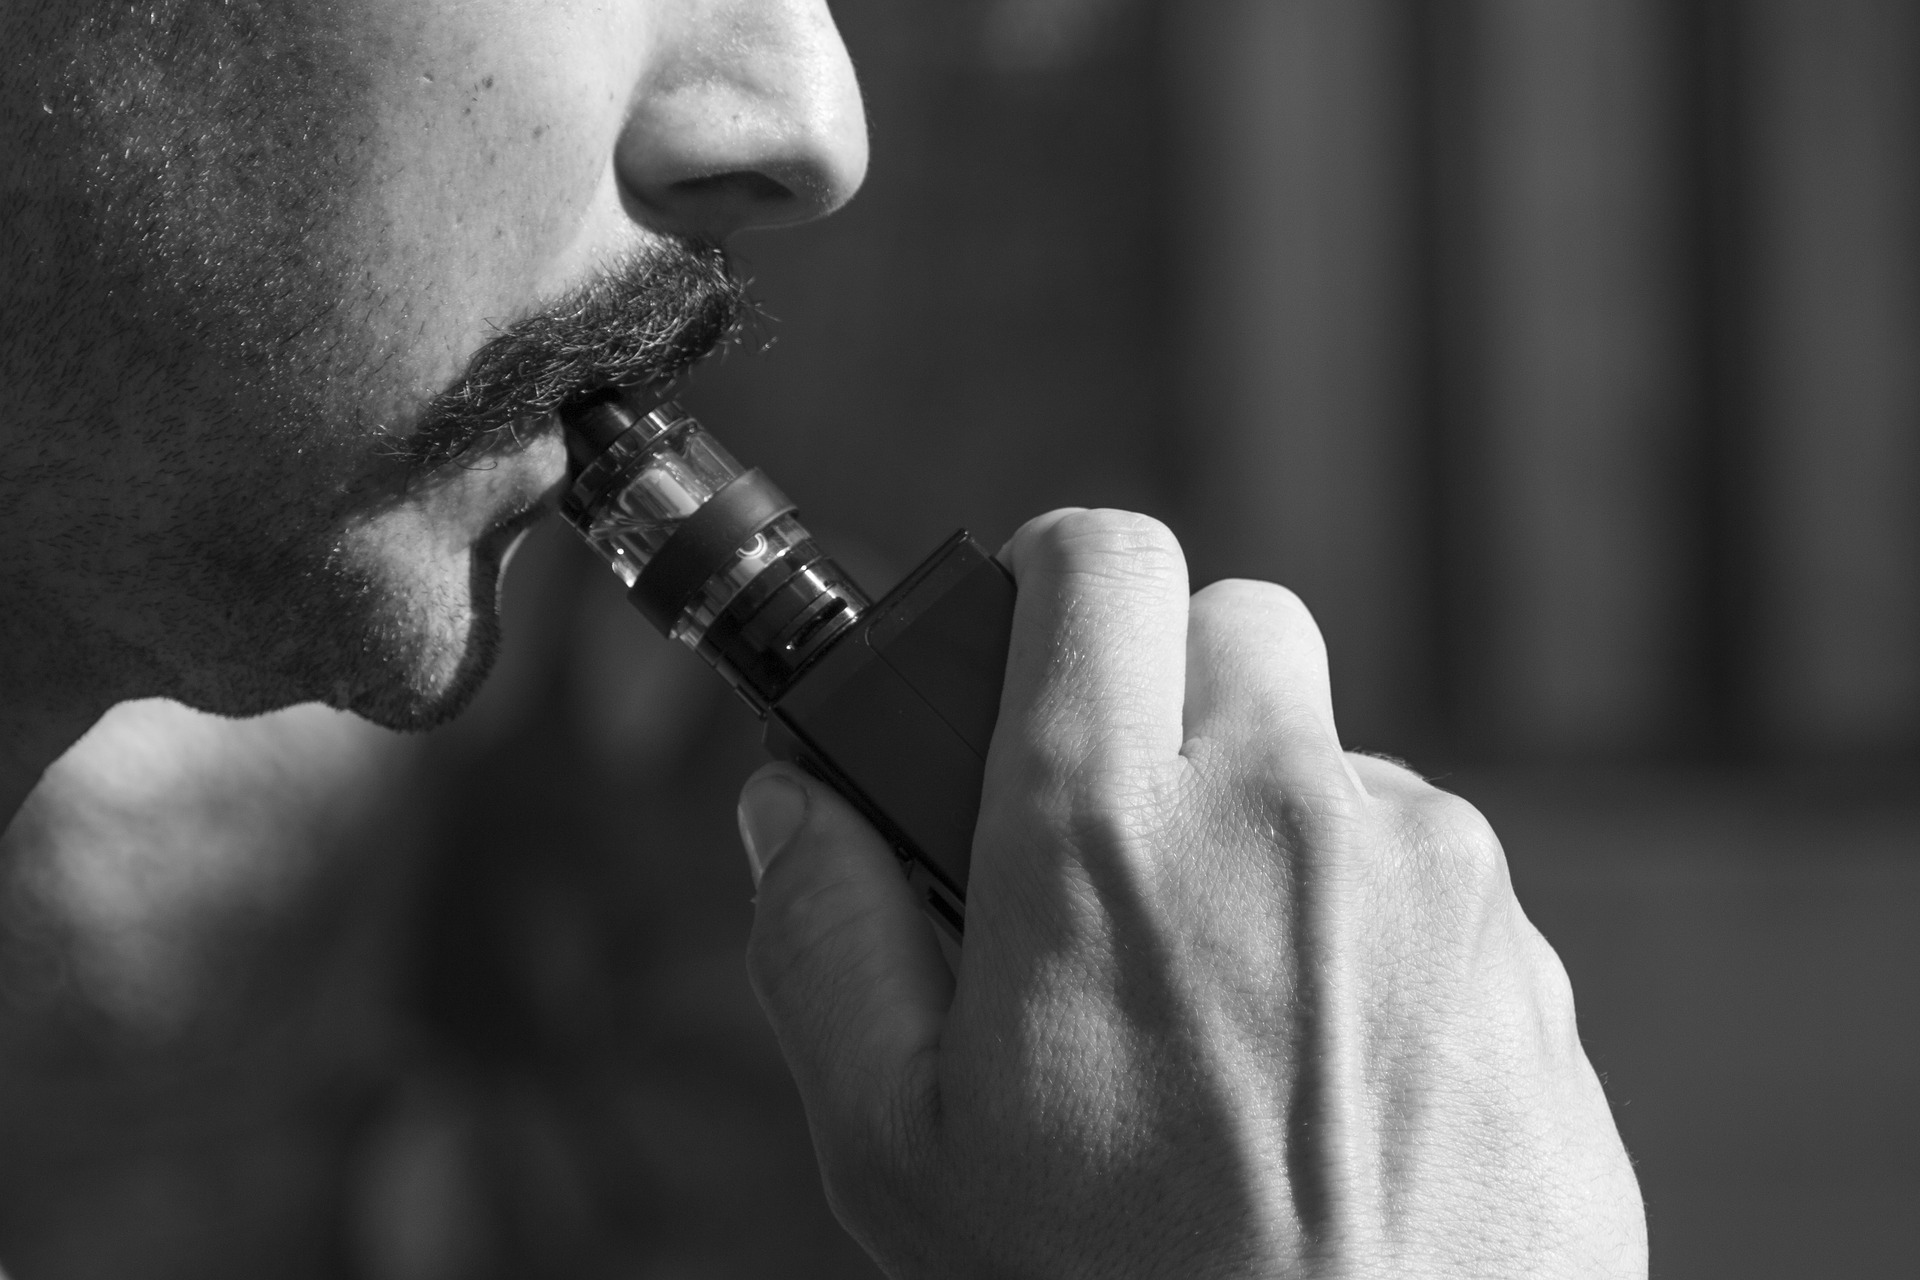 man vaping heat not burn cigarettes why vaping could be more dangerous than you think